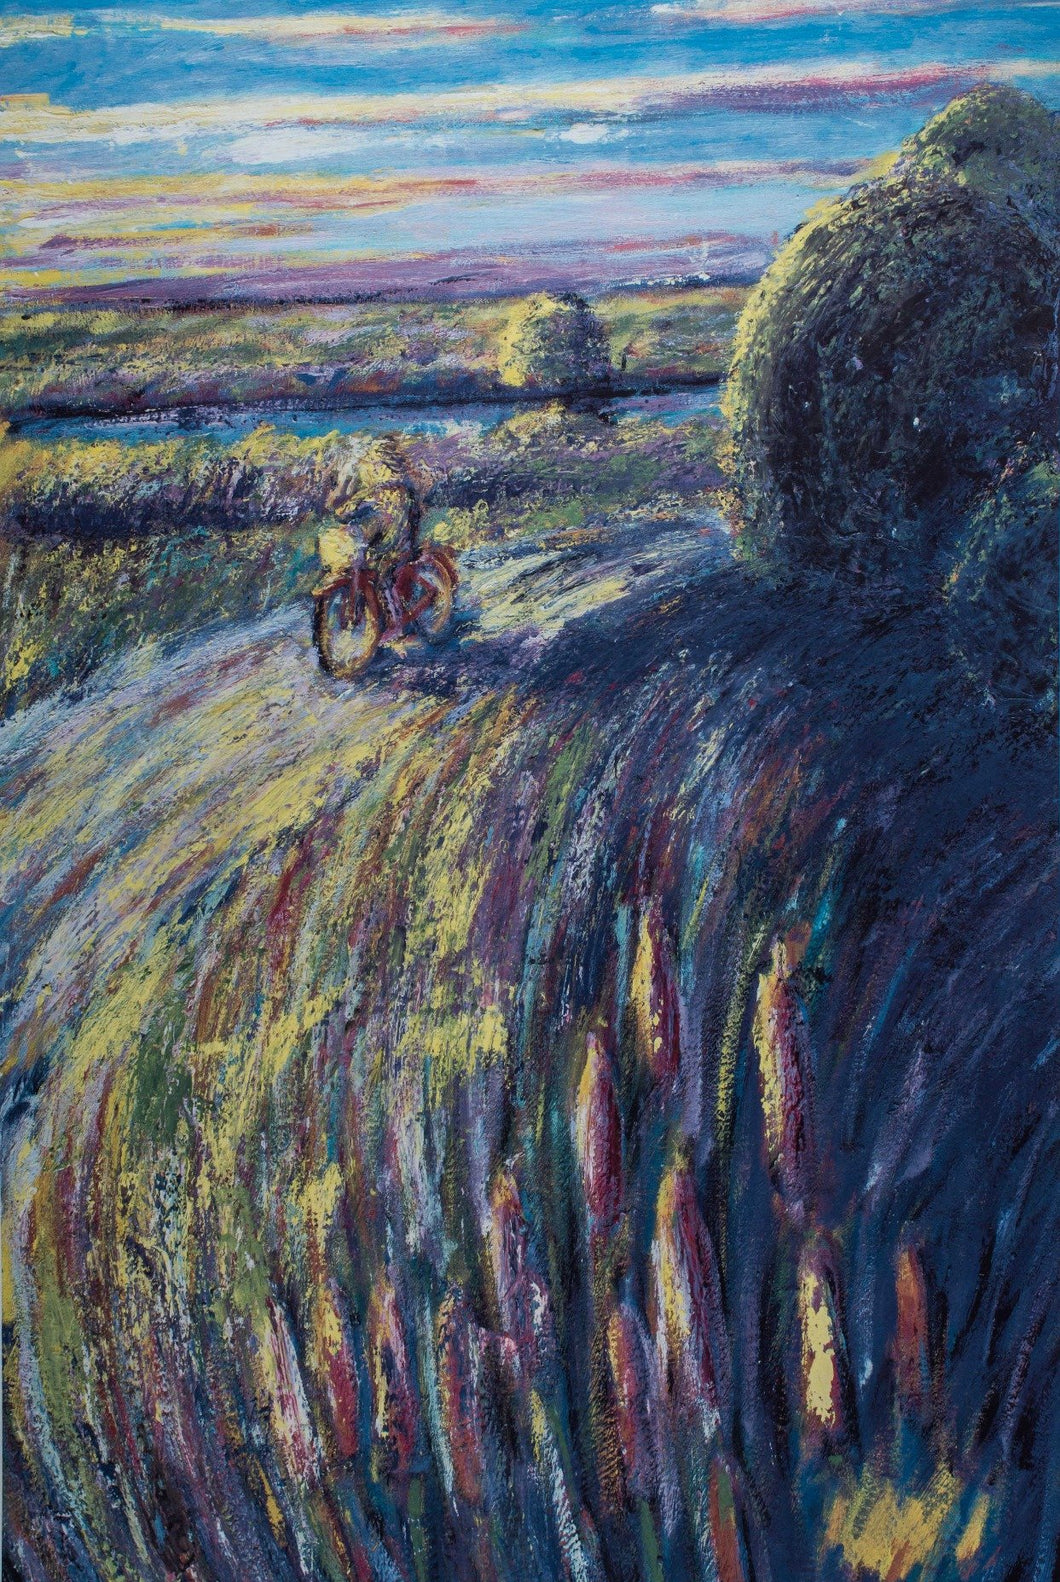 Girl on Bicycle on a country field  and road